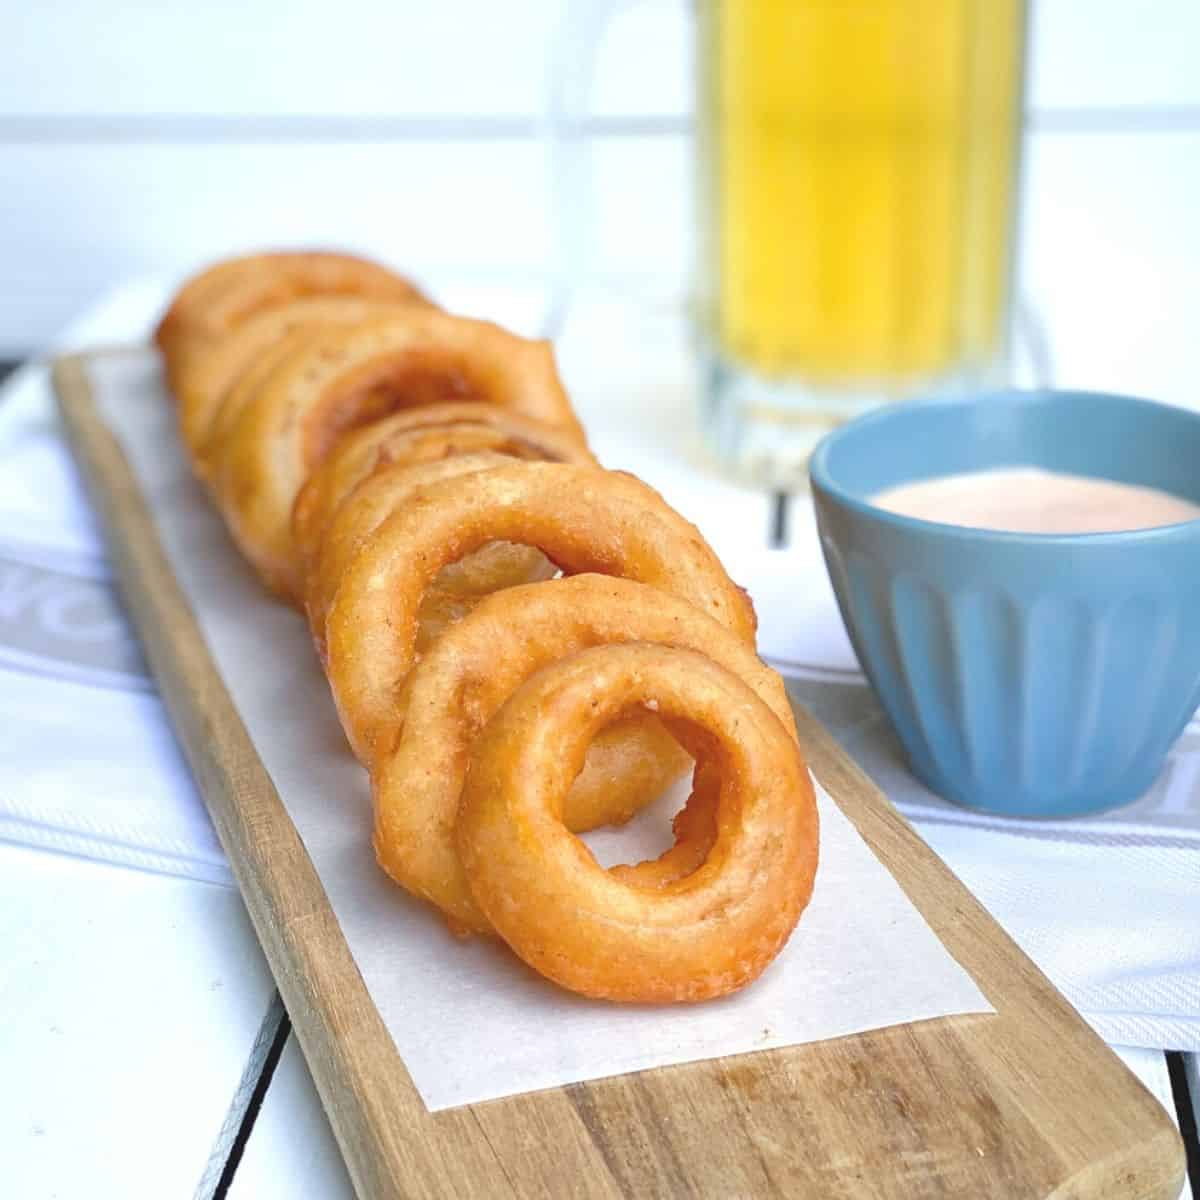 crispy beer battered onion rings on a wooden plank with dipping sauce and a beer on the side.